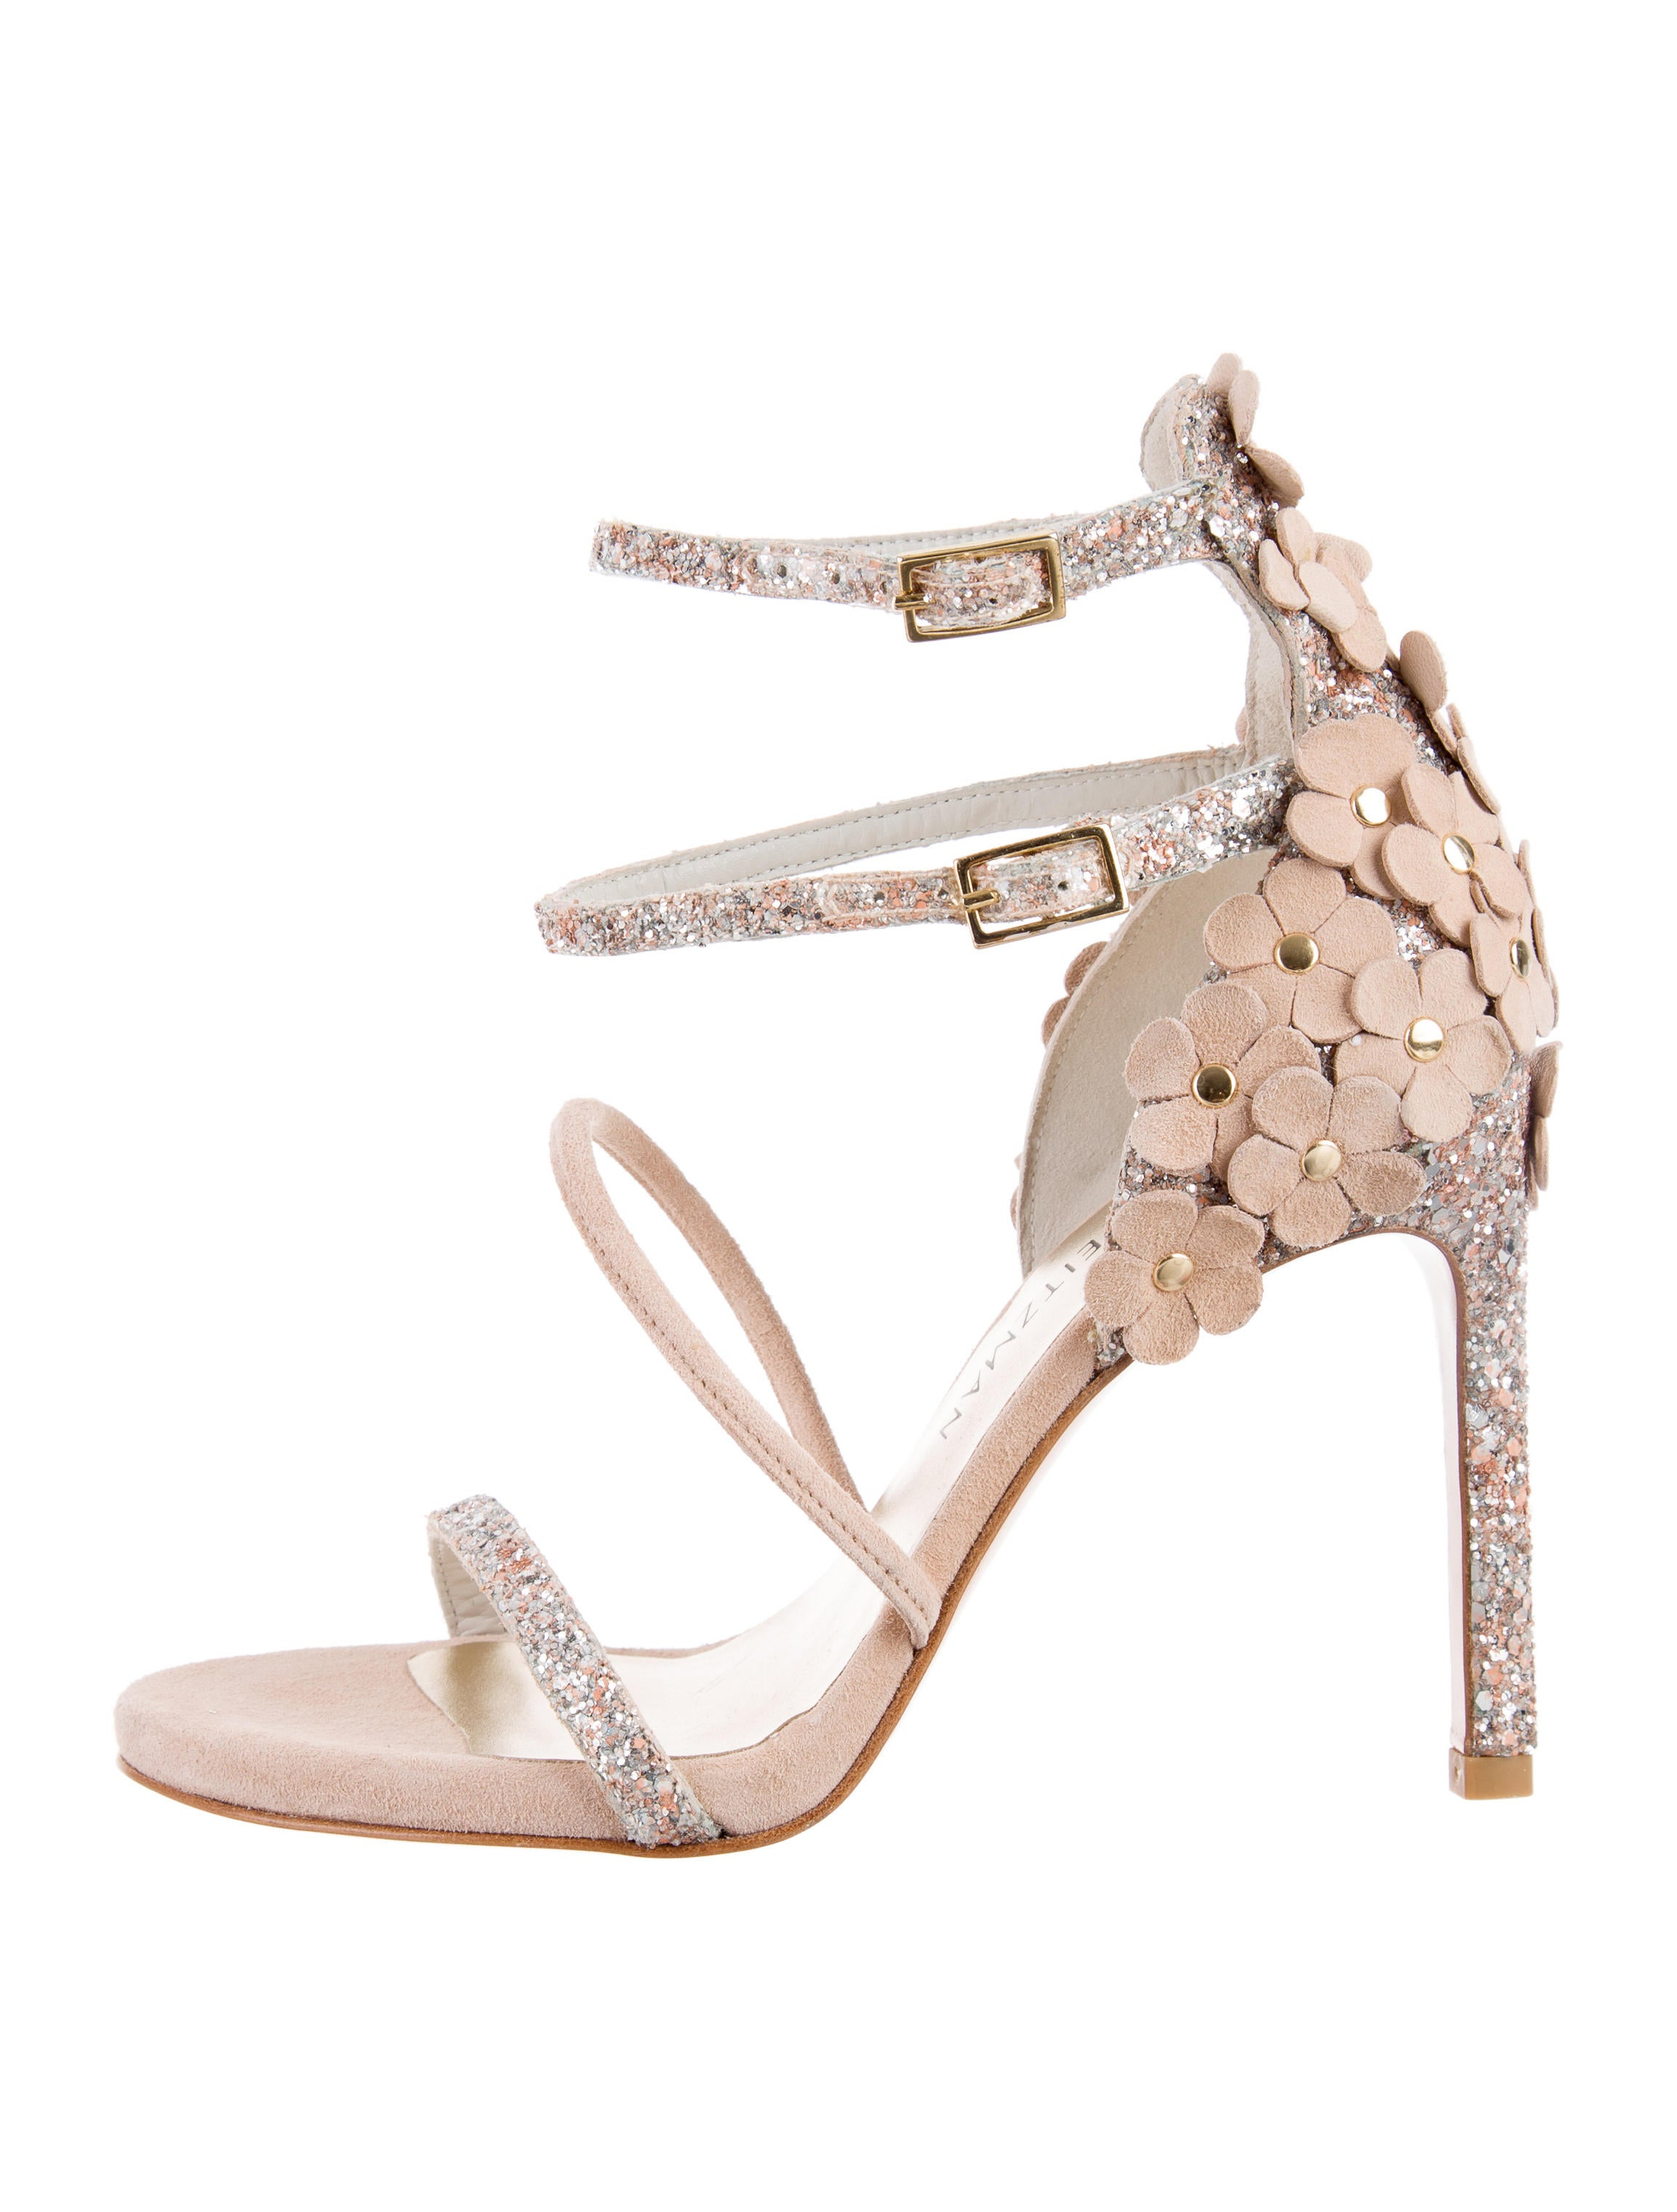 free shipping nicekicks Stuart Weitzman Floral-Embellished Slingback Sandals free shipping buy buy cheap authentic outlet best BWIh0